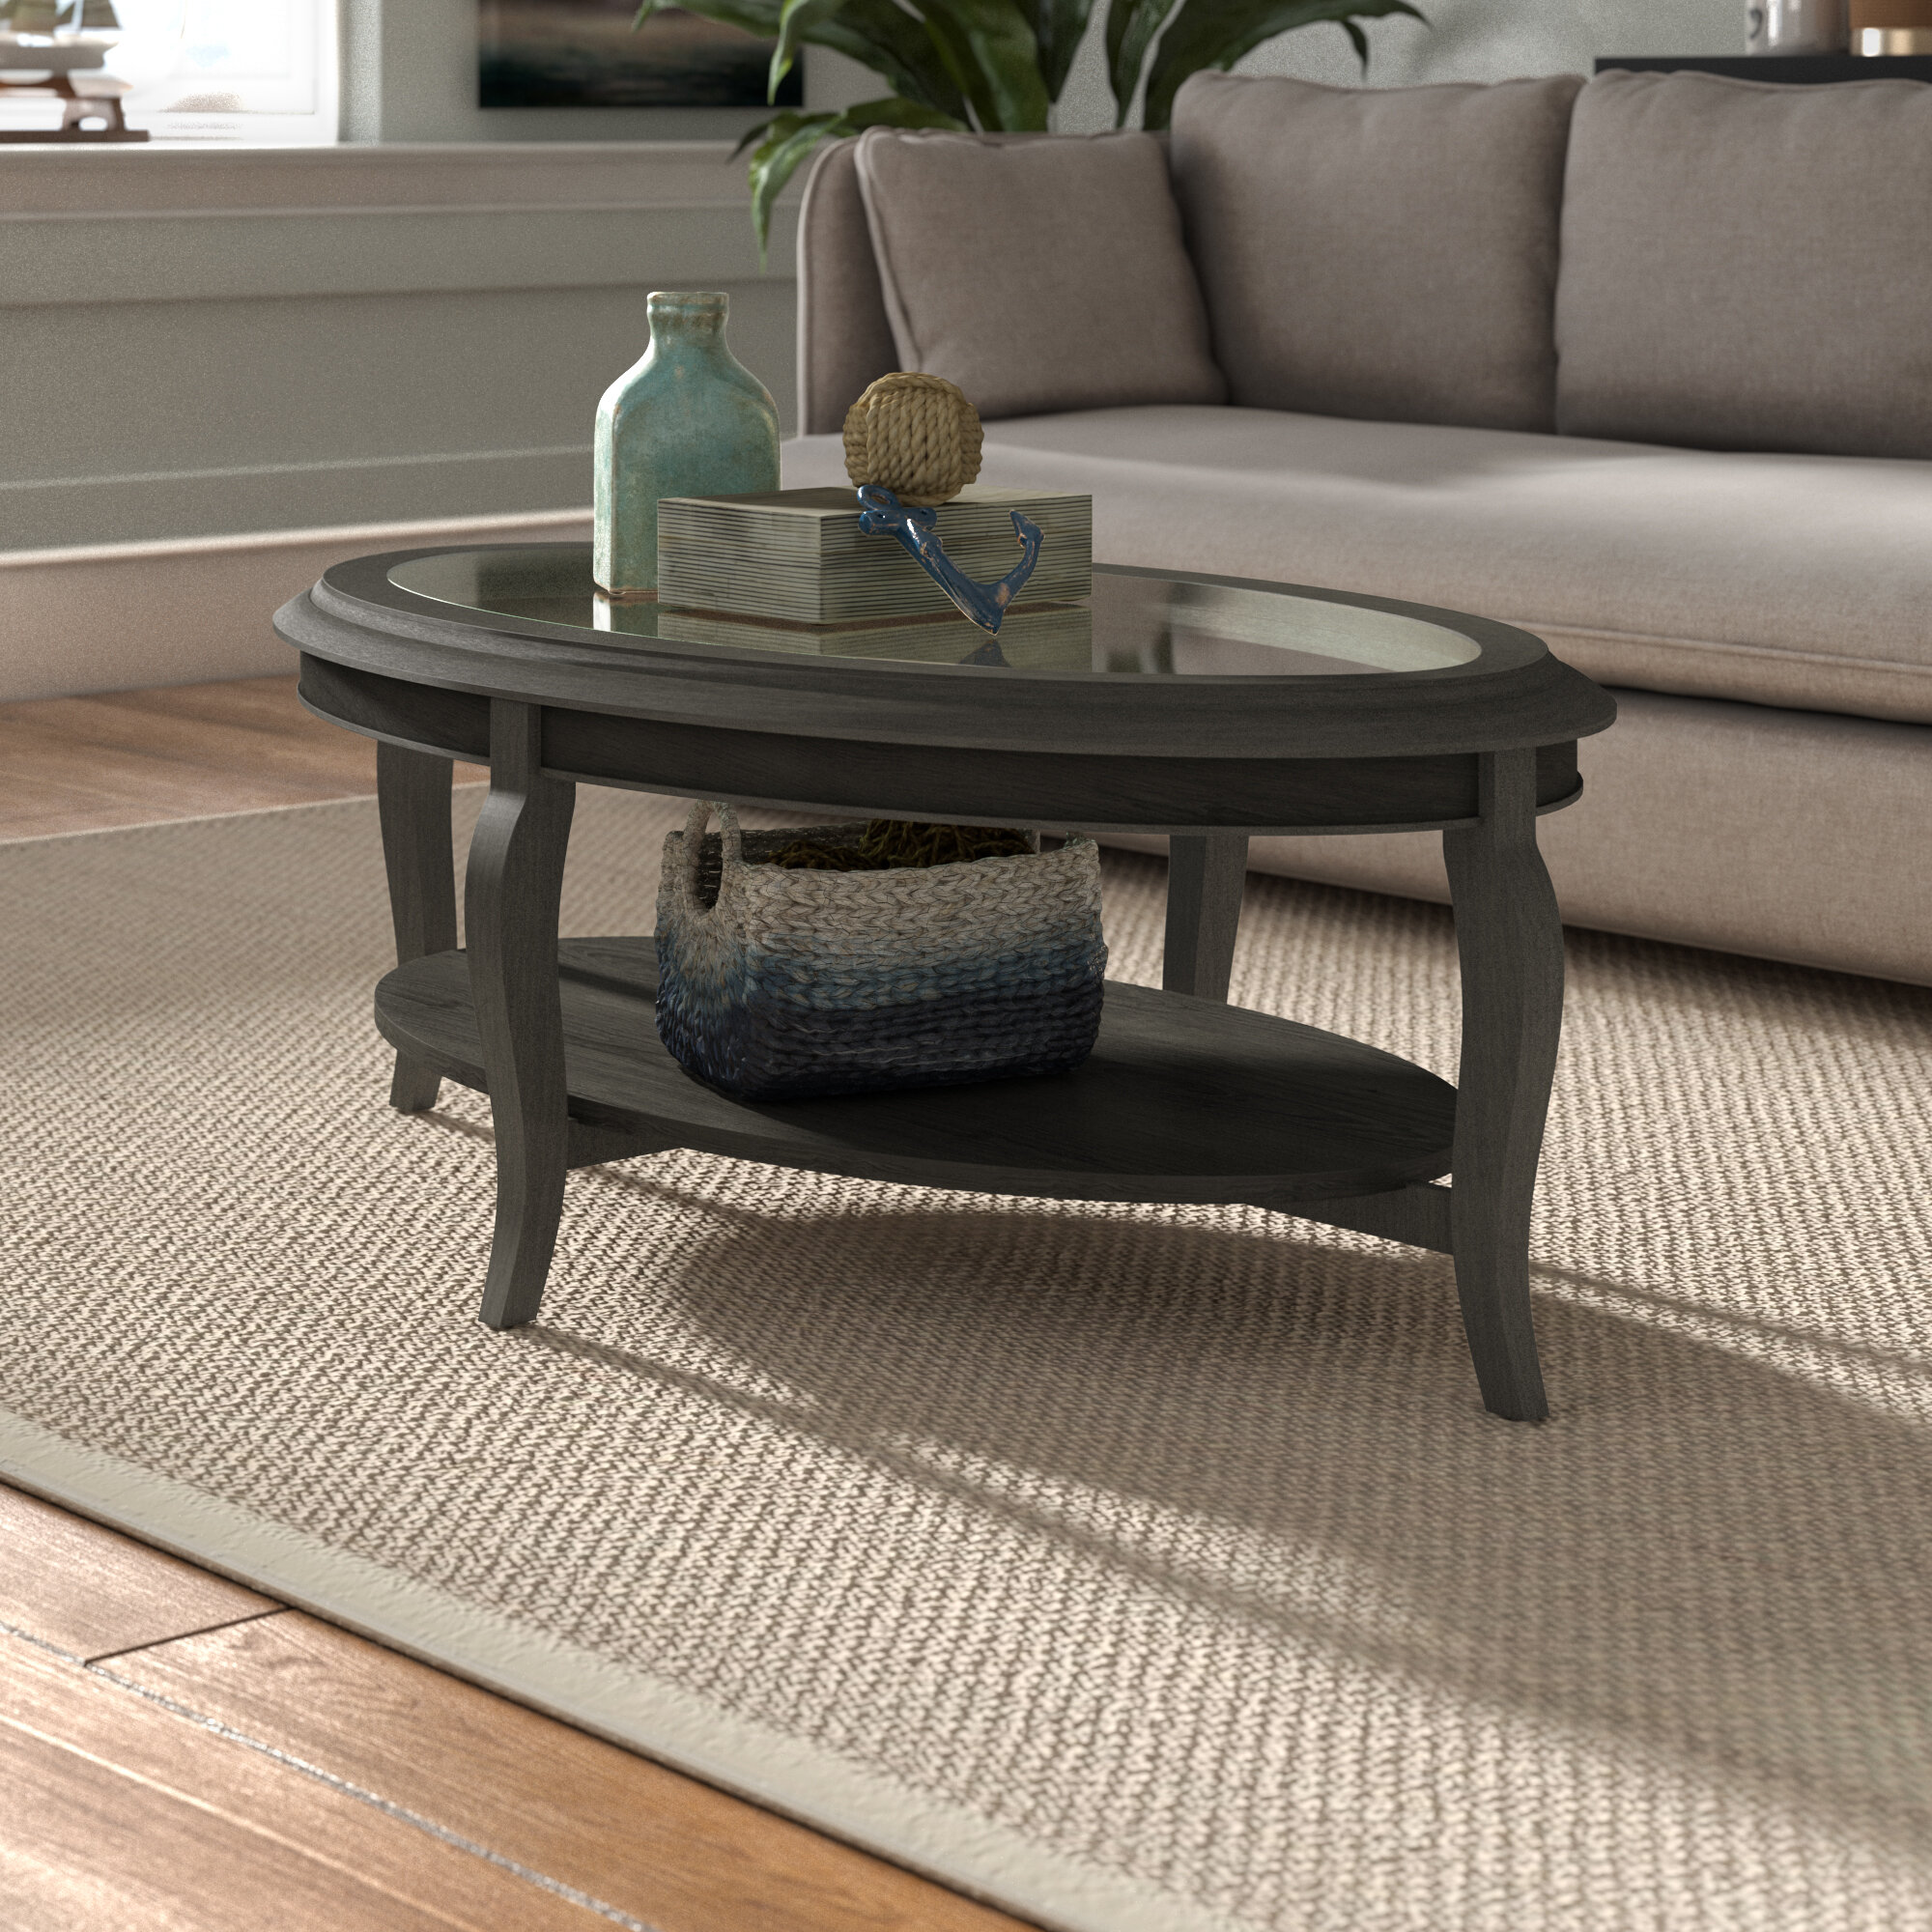 Rannie Coffee Table with Storage